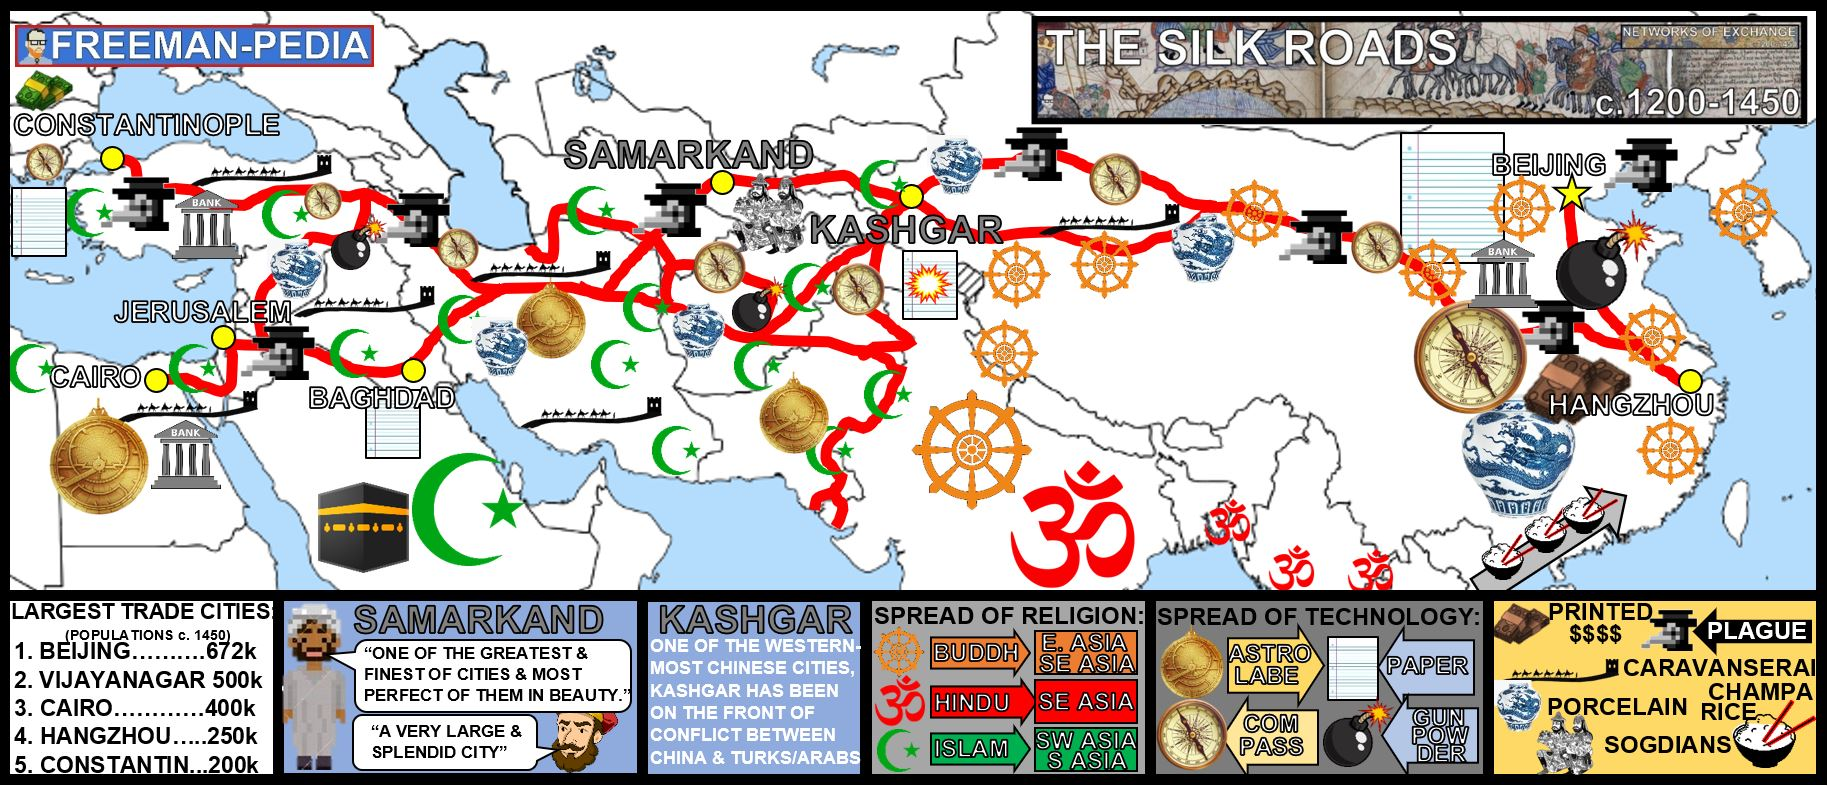 SILK ROADS NETWORKS OF EXCHANGE AP WORLD HISTORY MODERN FREEMANPEDIA.JPG